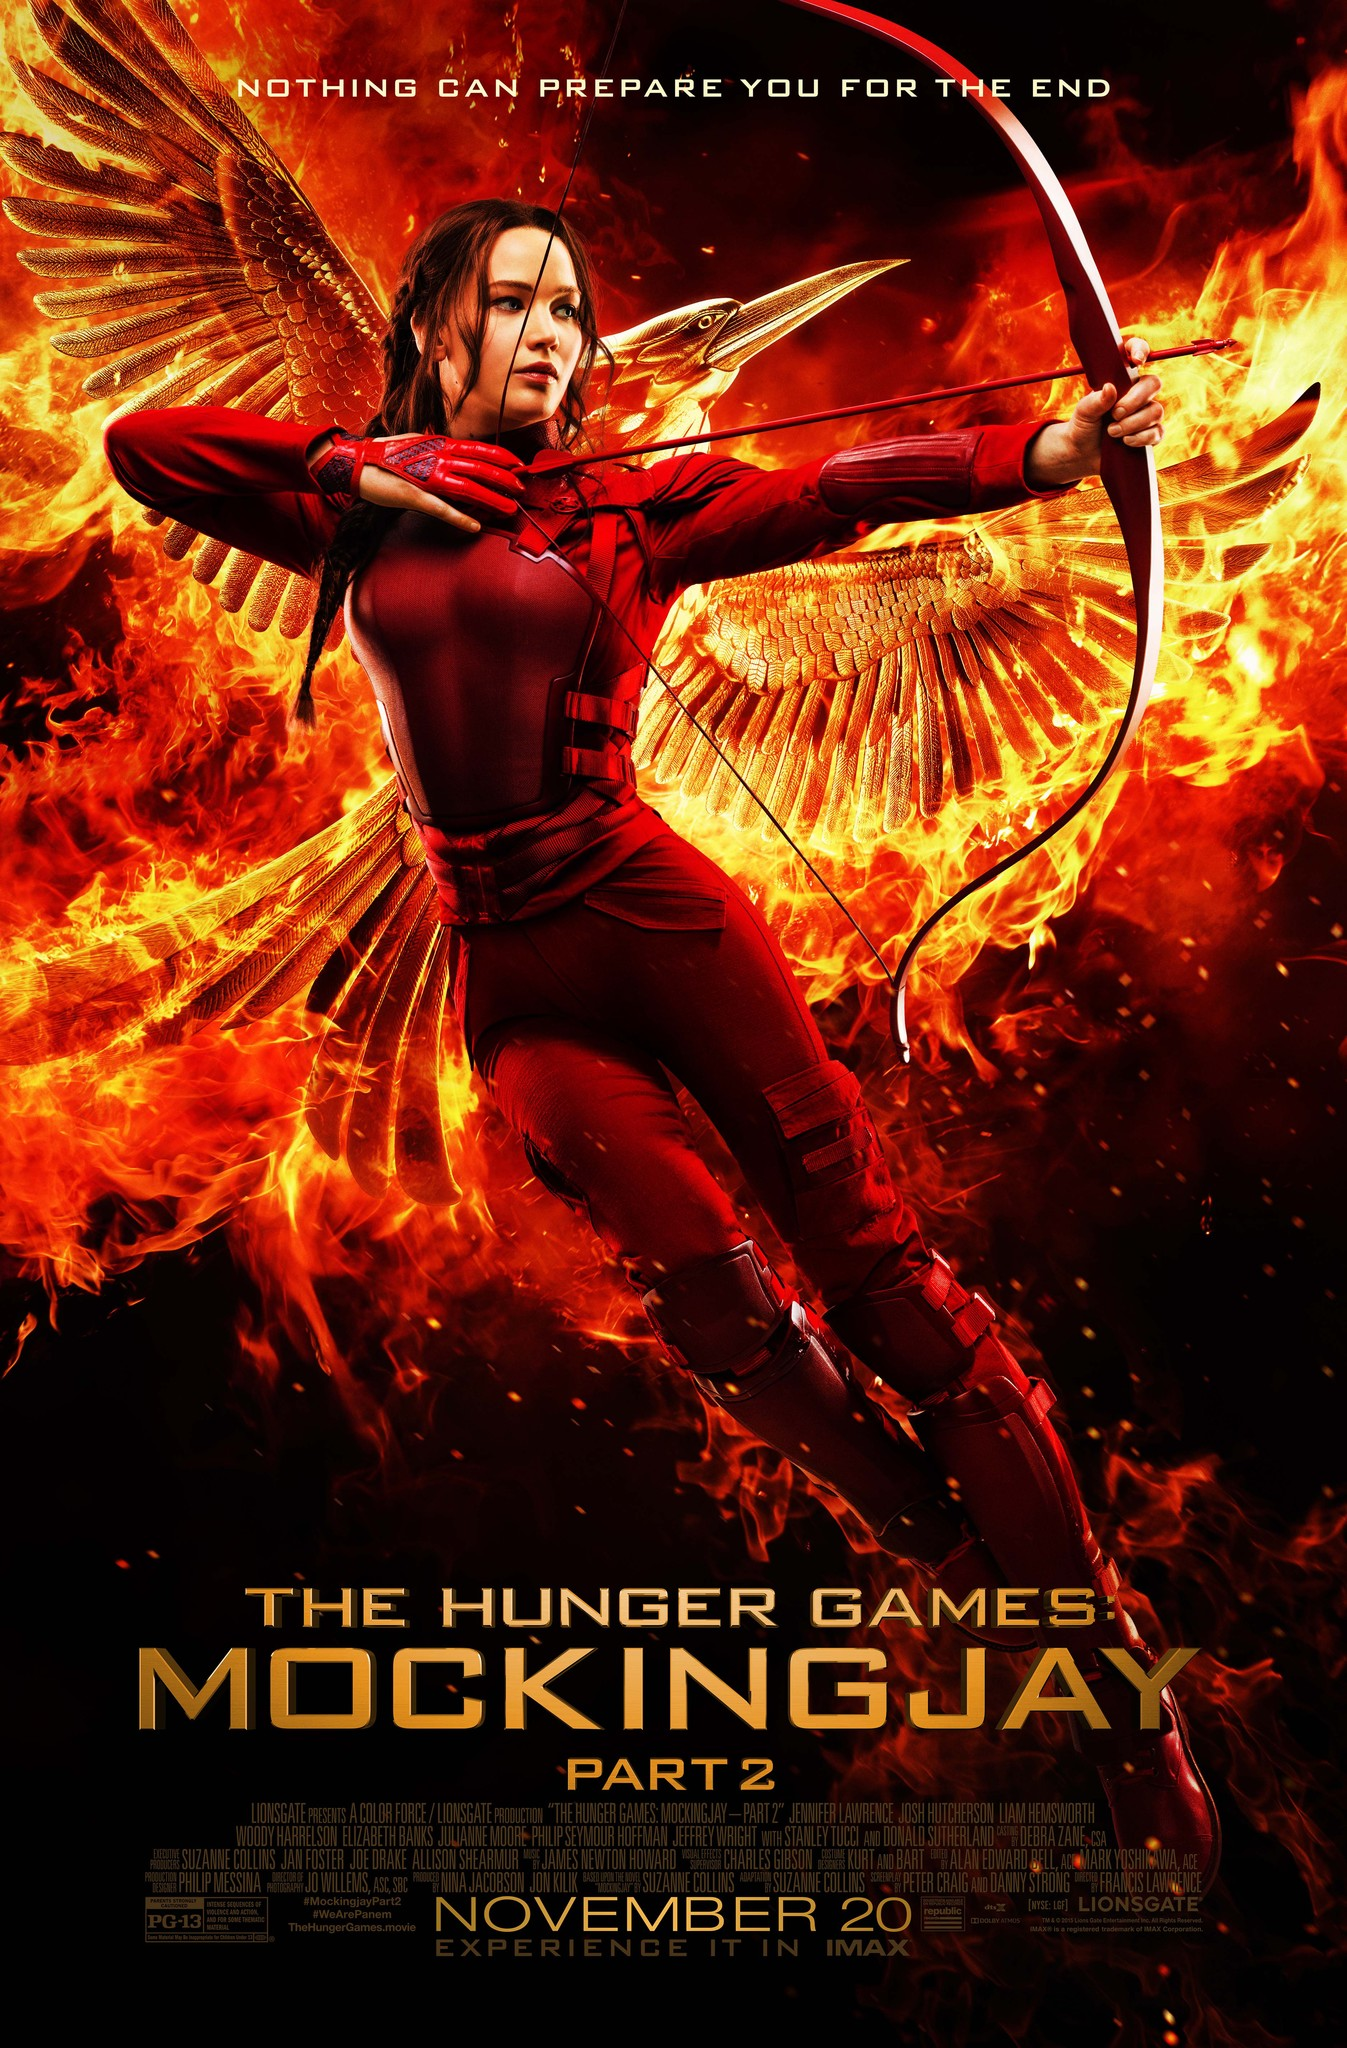 Hunger games mockingjay part 2 full movie download mp4 ...